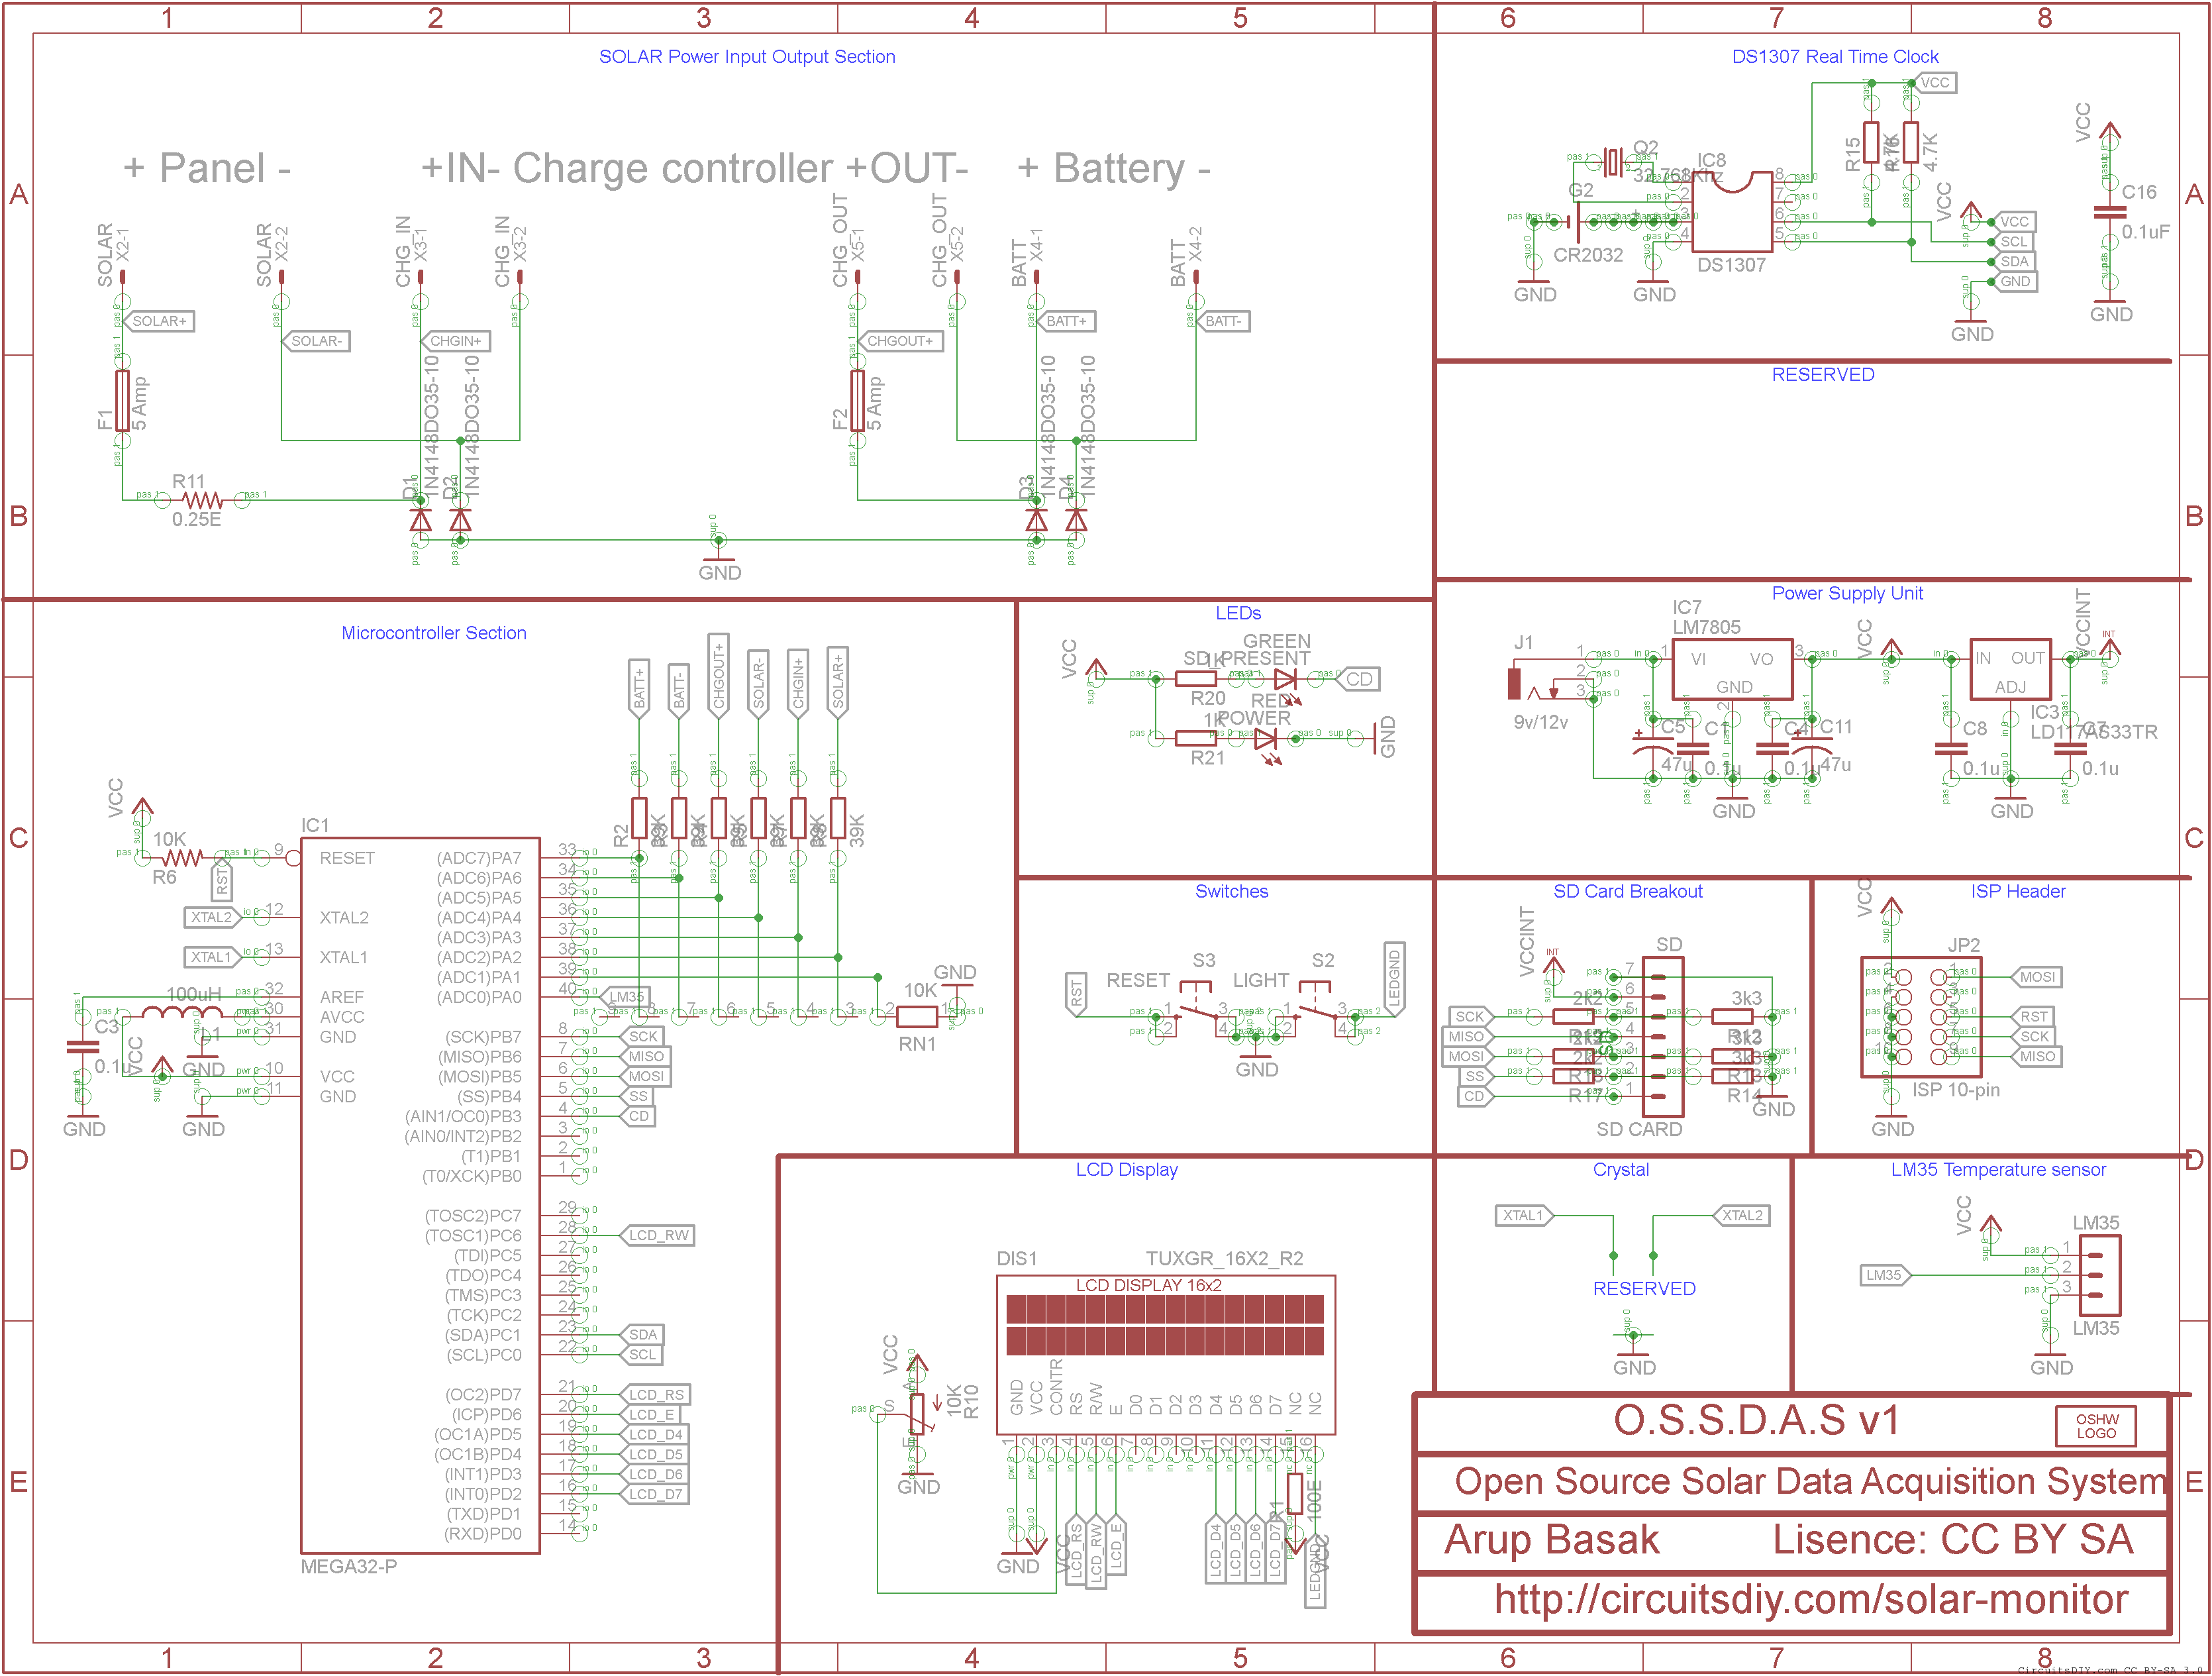 Usb Avr Programmer Final Based On Usbtinyisp Circuits Diy Atmel Isp Circuit Schematic This Is Update To The Schematics A Little Changed Now Include Header Pin For Breadboarding With Two Gnd Vcc So That